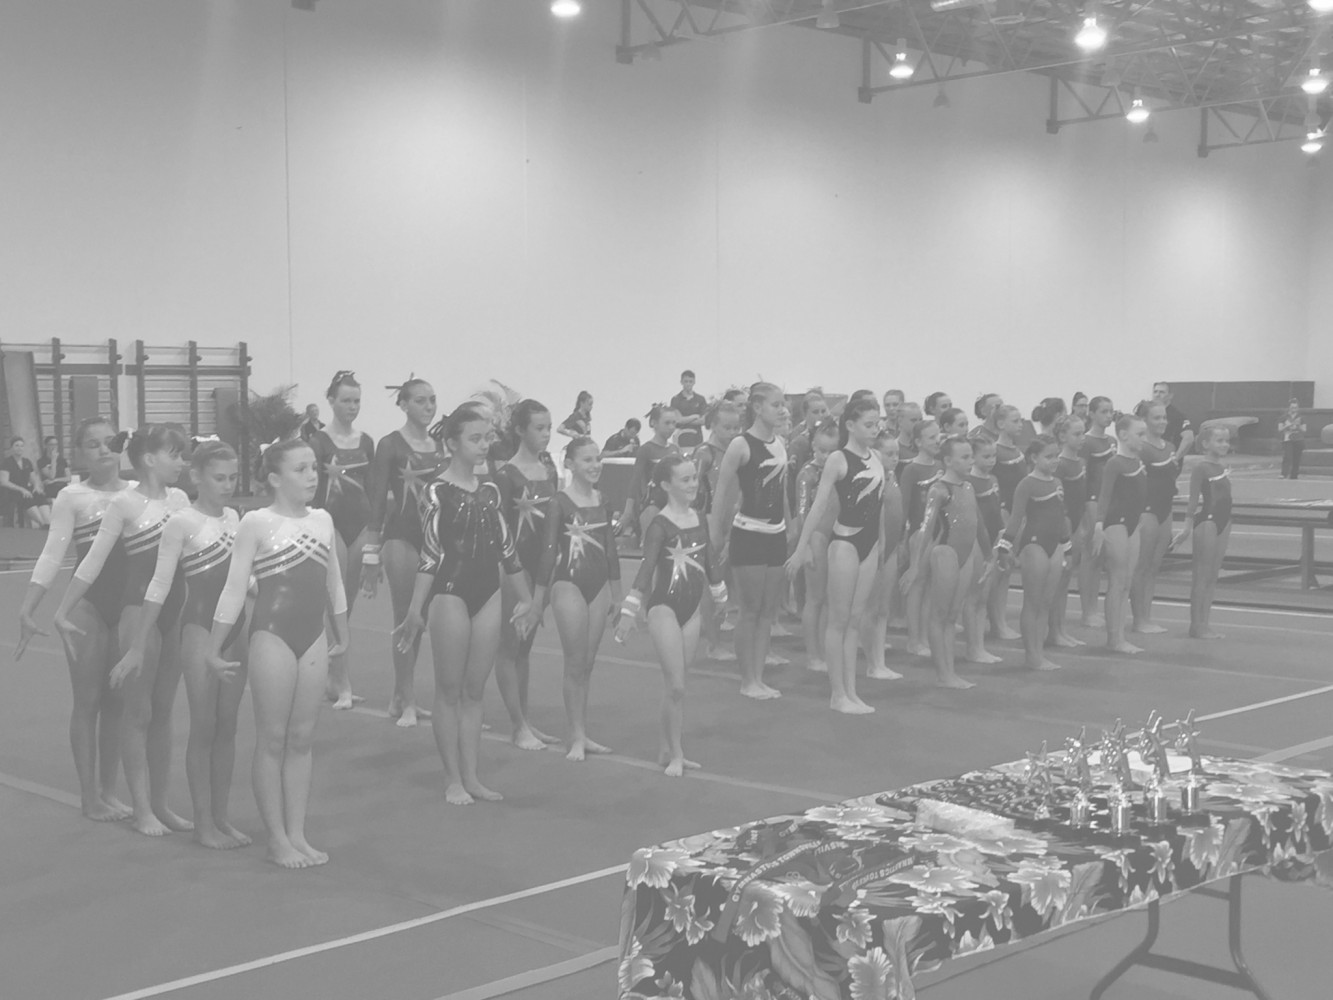 NWG North West Gymnastics Mount Isa Townsville Competition 2016 Background mountisagymnastics nwgmountisa